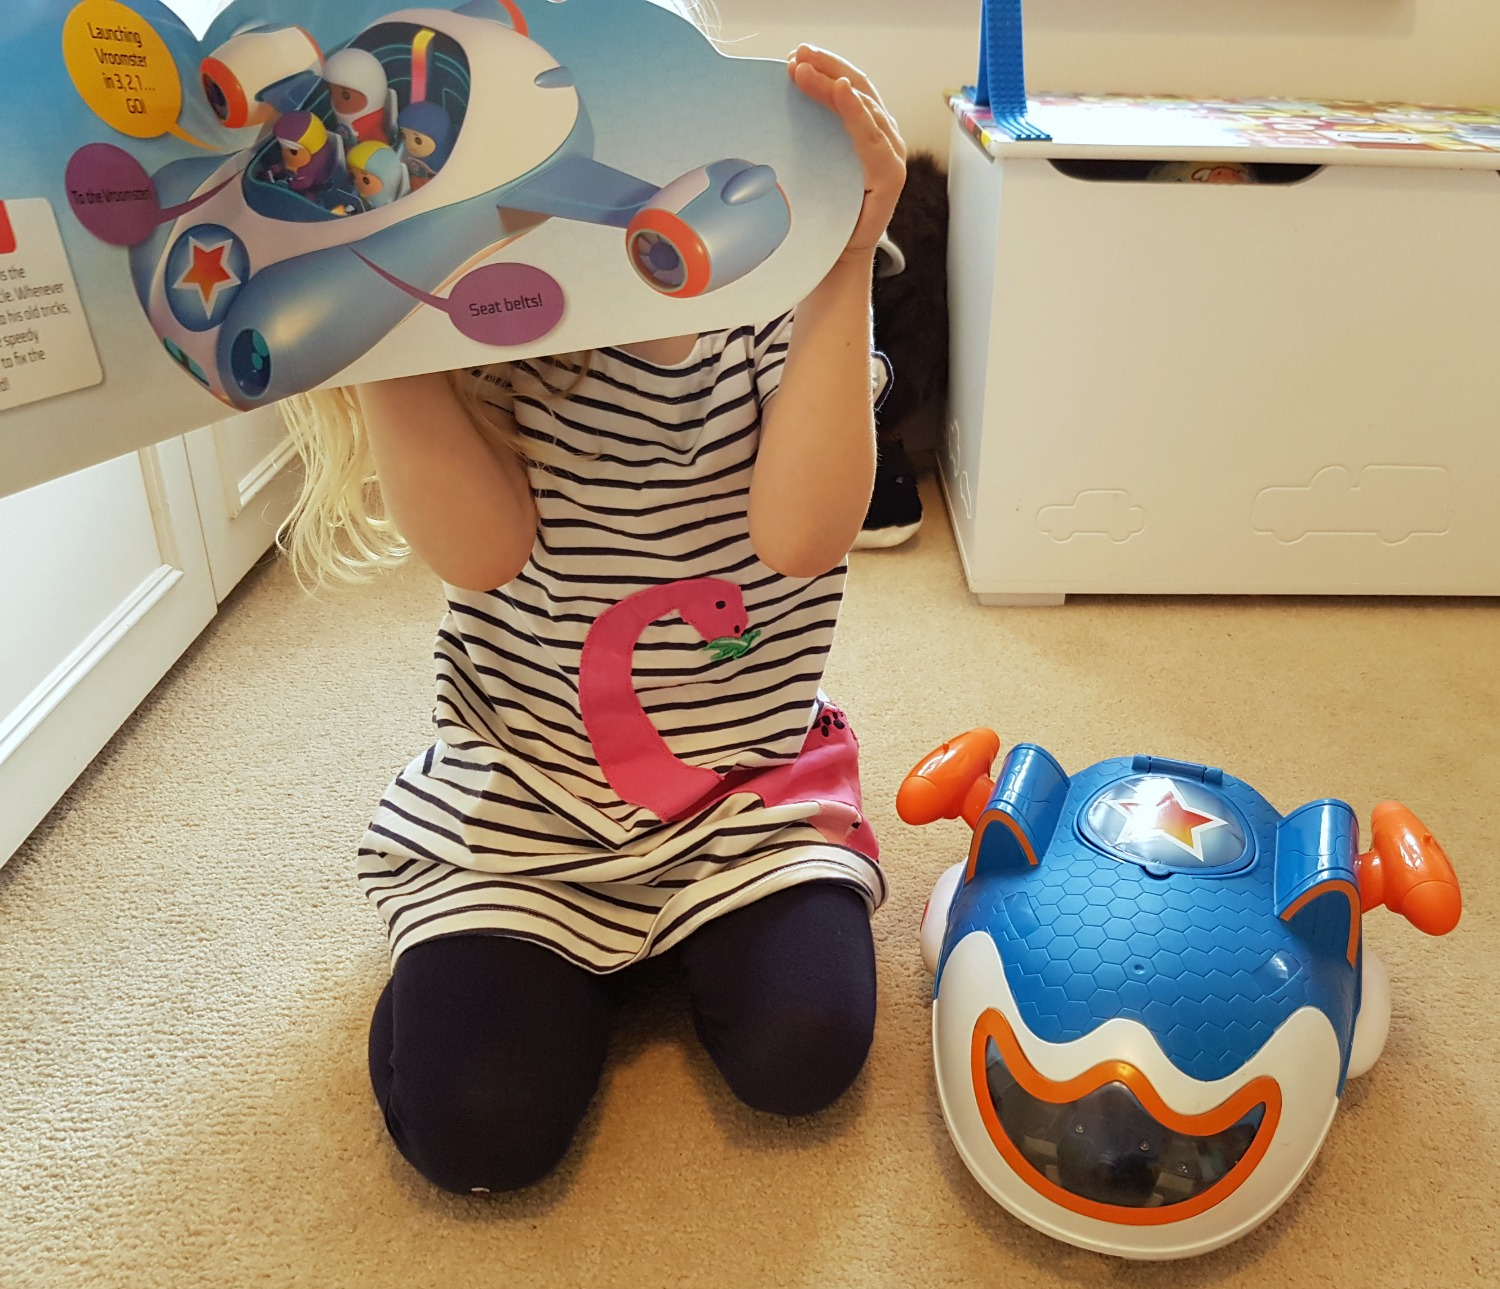 My daughter holds up the new Go Jetters: Jet Set Go Board book along with her toy Jet Pad - my Go Jetters Jet Set Go review and giveaway